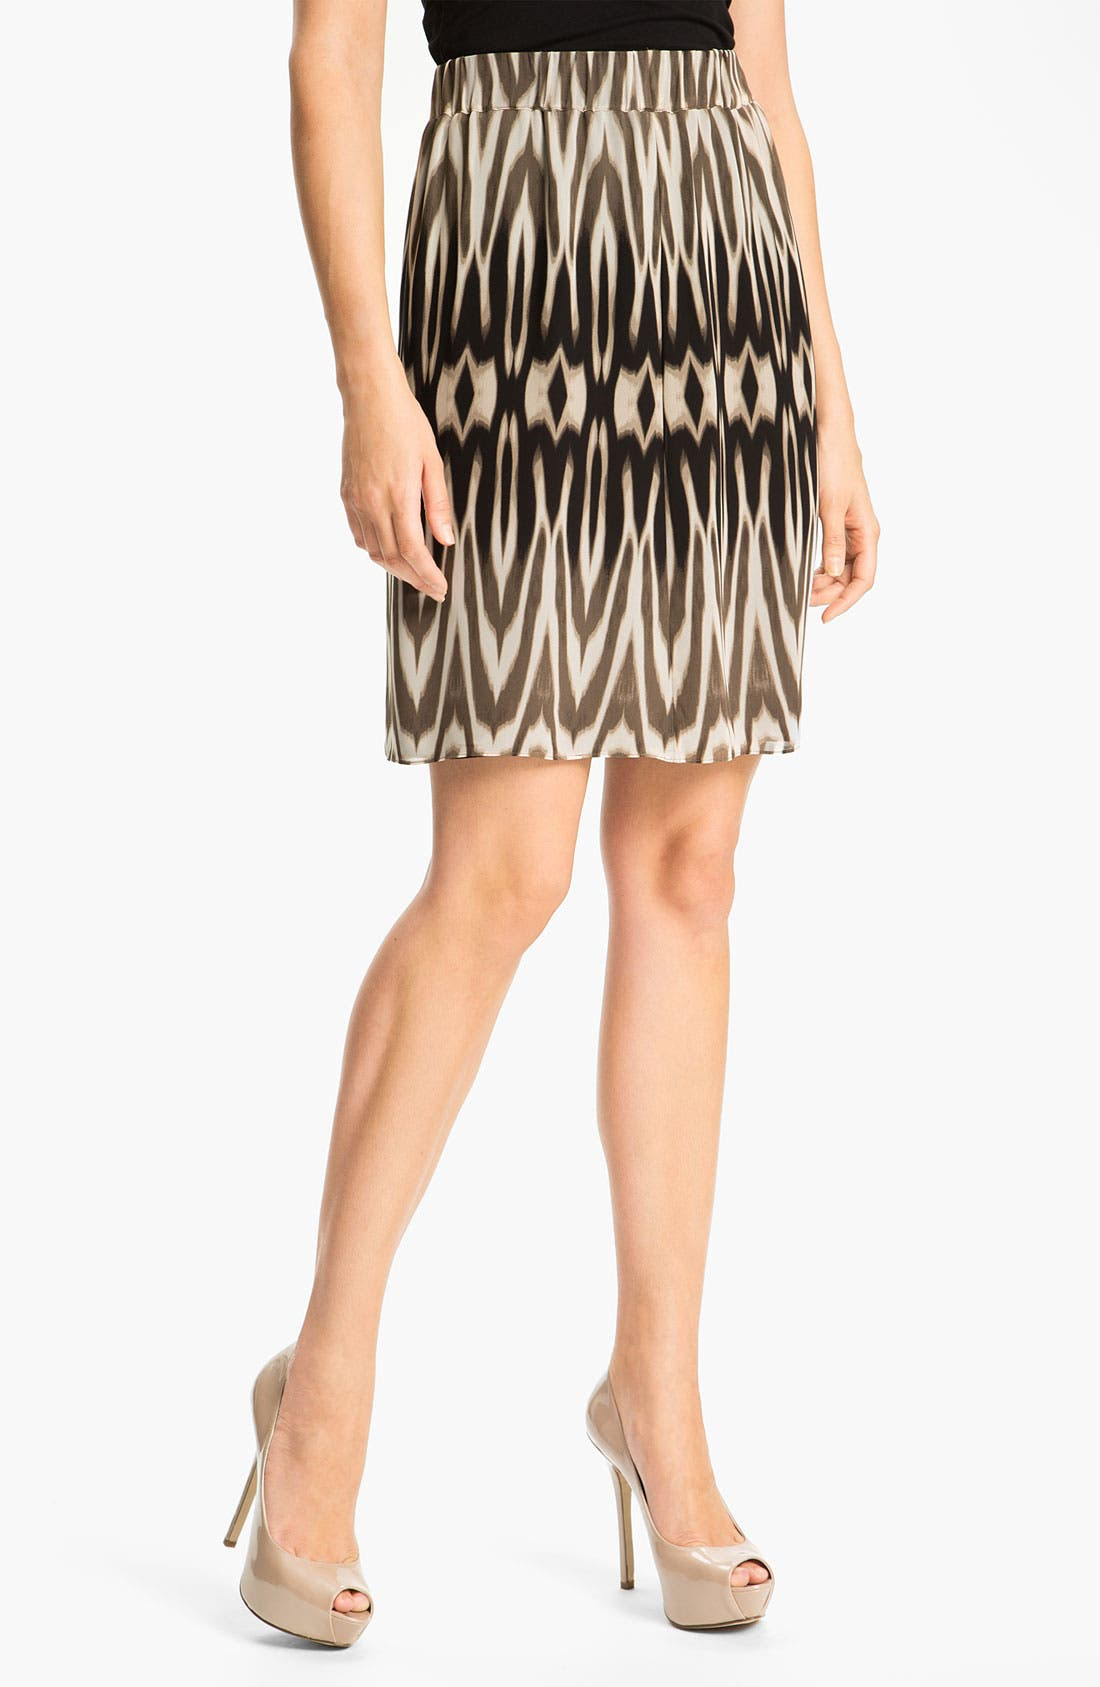 Alternate Image 1 Selected - Chaus Ombré Ikat Print Skirt